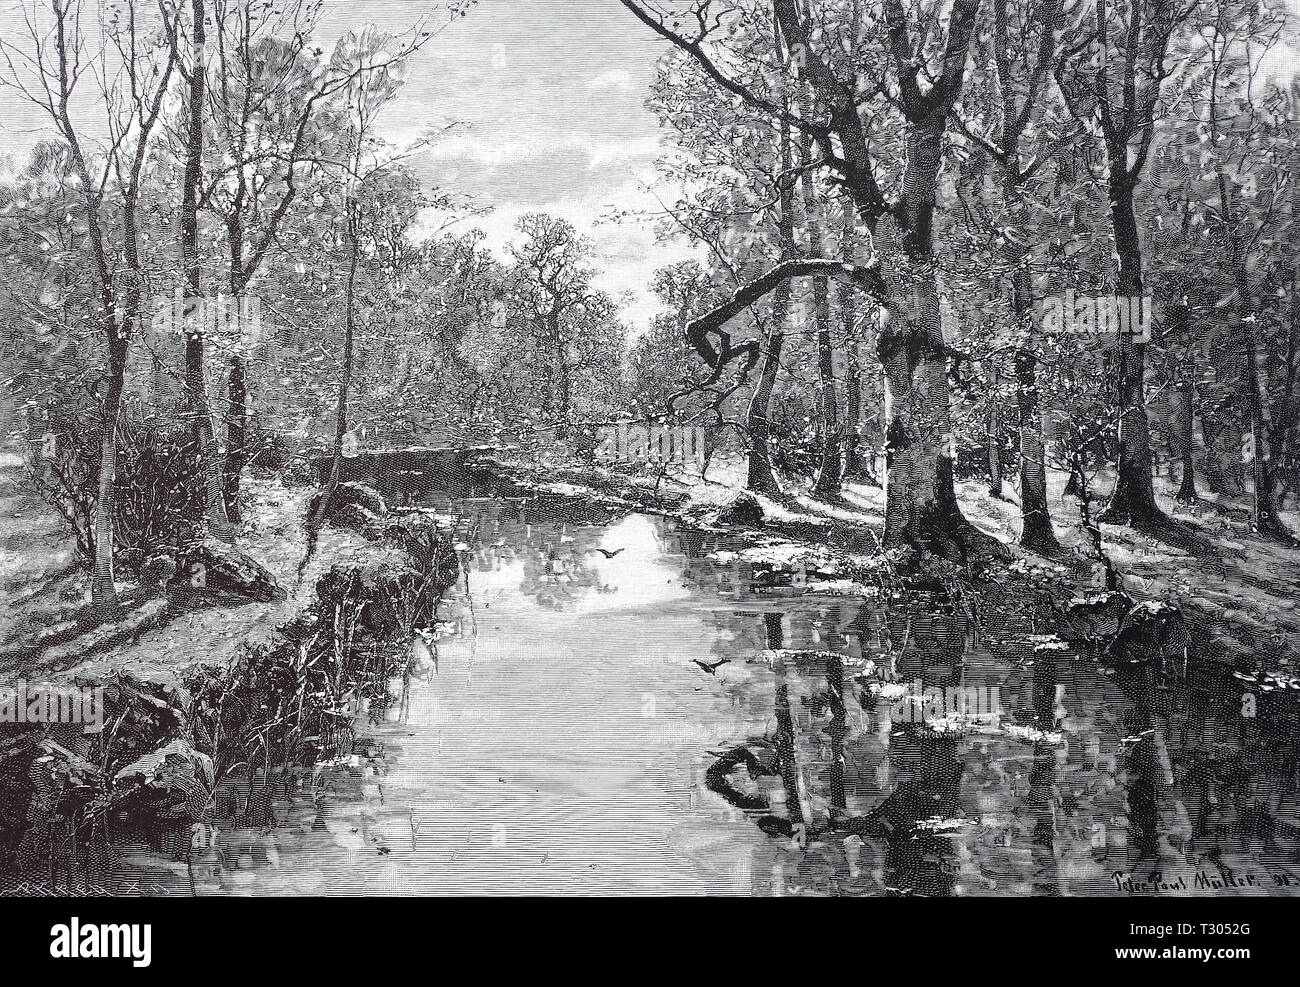 Digital improved reproduction, Forest brook, a brook flows by the deciduous forest, after a painting of Peter Paul Müller, scenery painting, Waldbach, ein Bach fließt durch den Laubwald, nach einem Gemälde von Peter Paul Müller, Landschaftsgemälde, from an original print from the 19th century Stock Photo